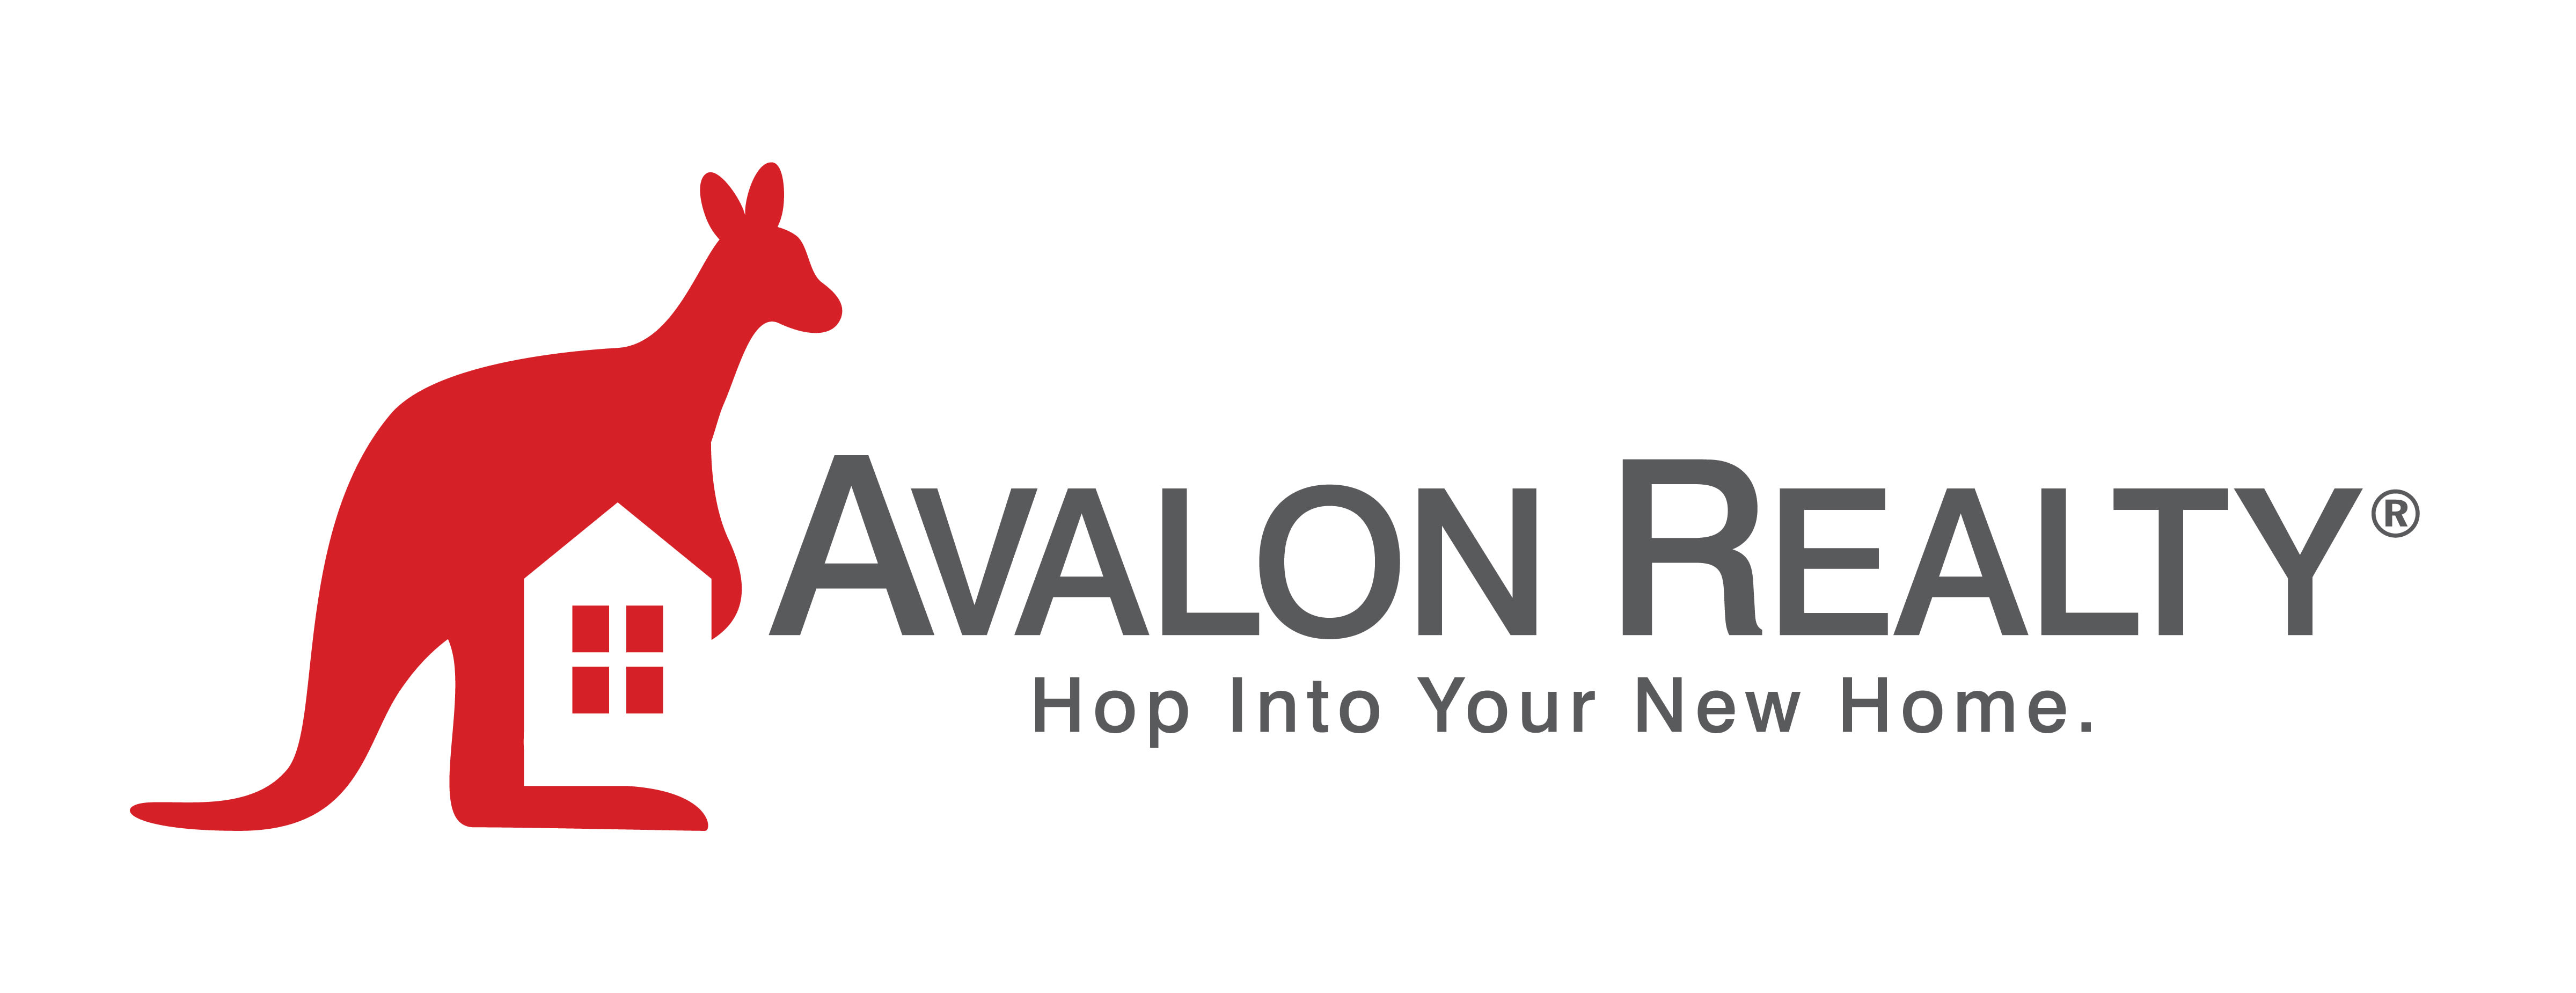 John Alexandrou: Avalon Realty Group